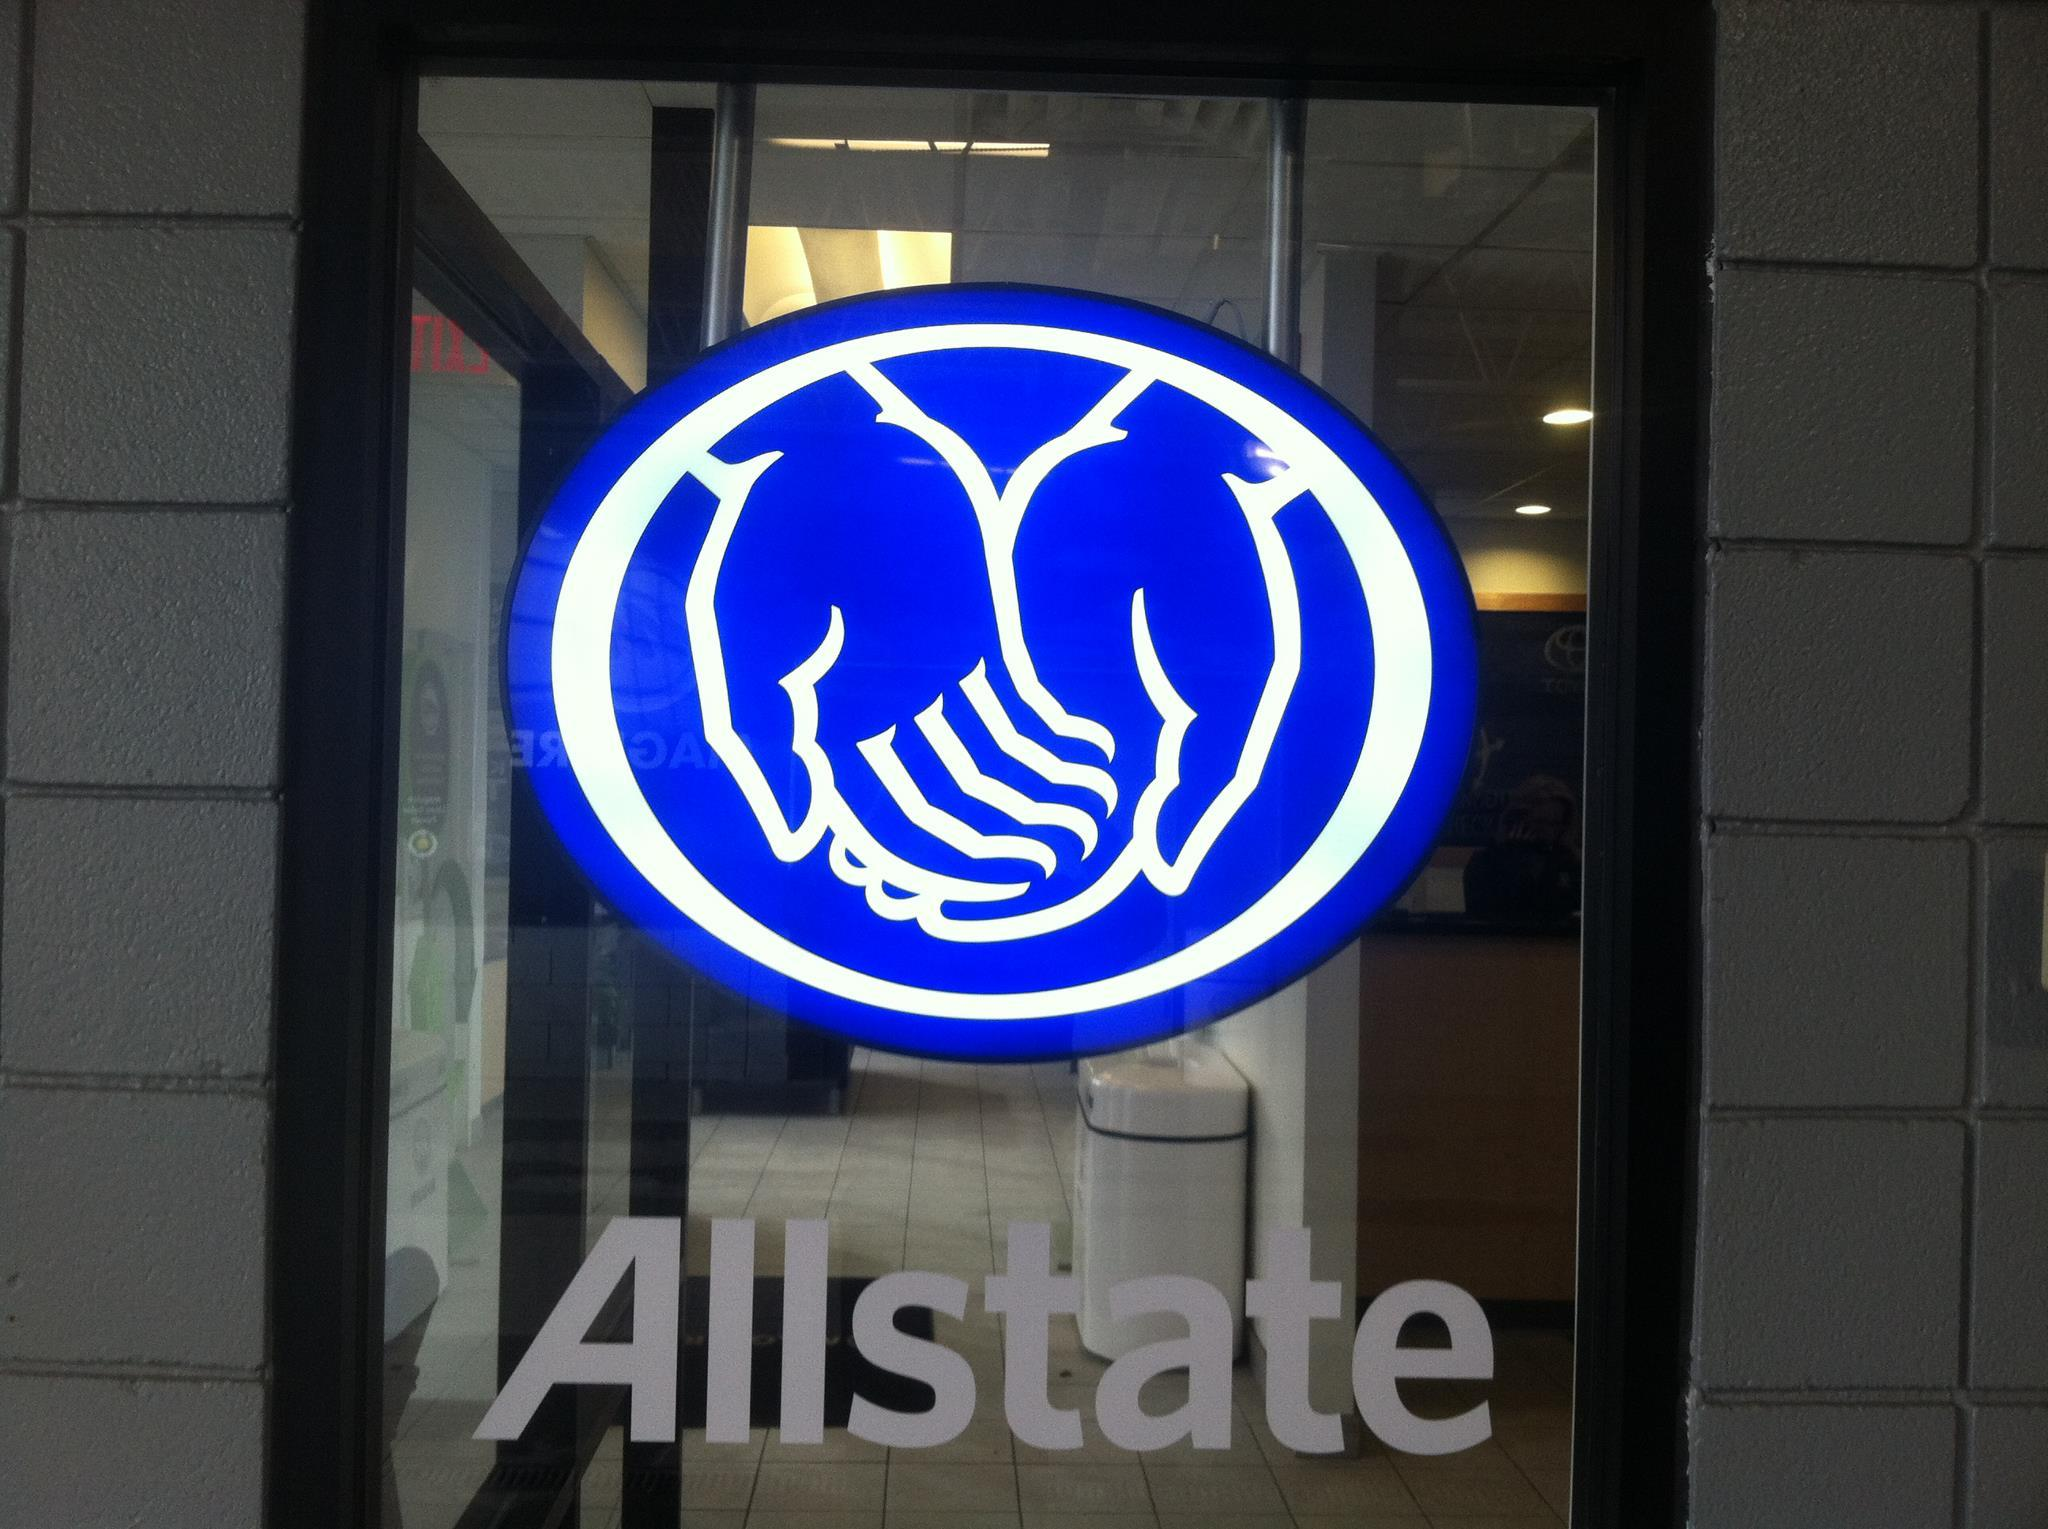 Allstate Insurance Agent: Philip Maguire - Ithaca, NY 14850 - (607) 257-9283 | ShowMeLocal.com